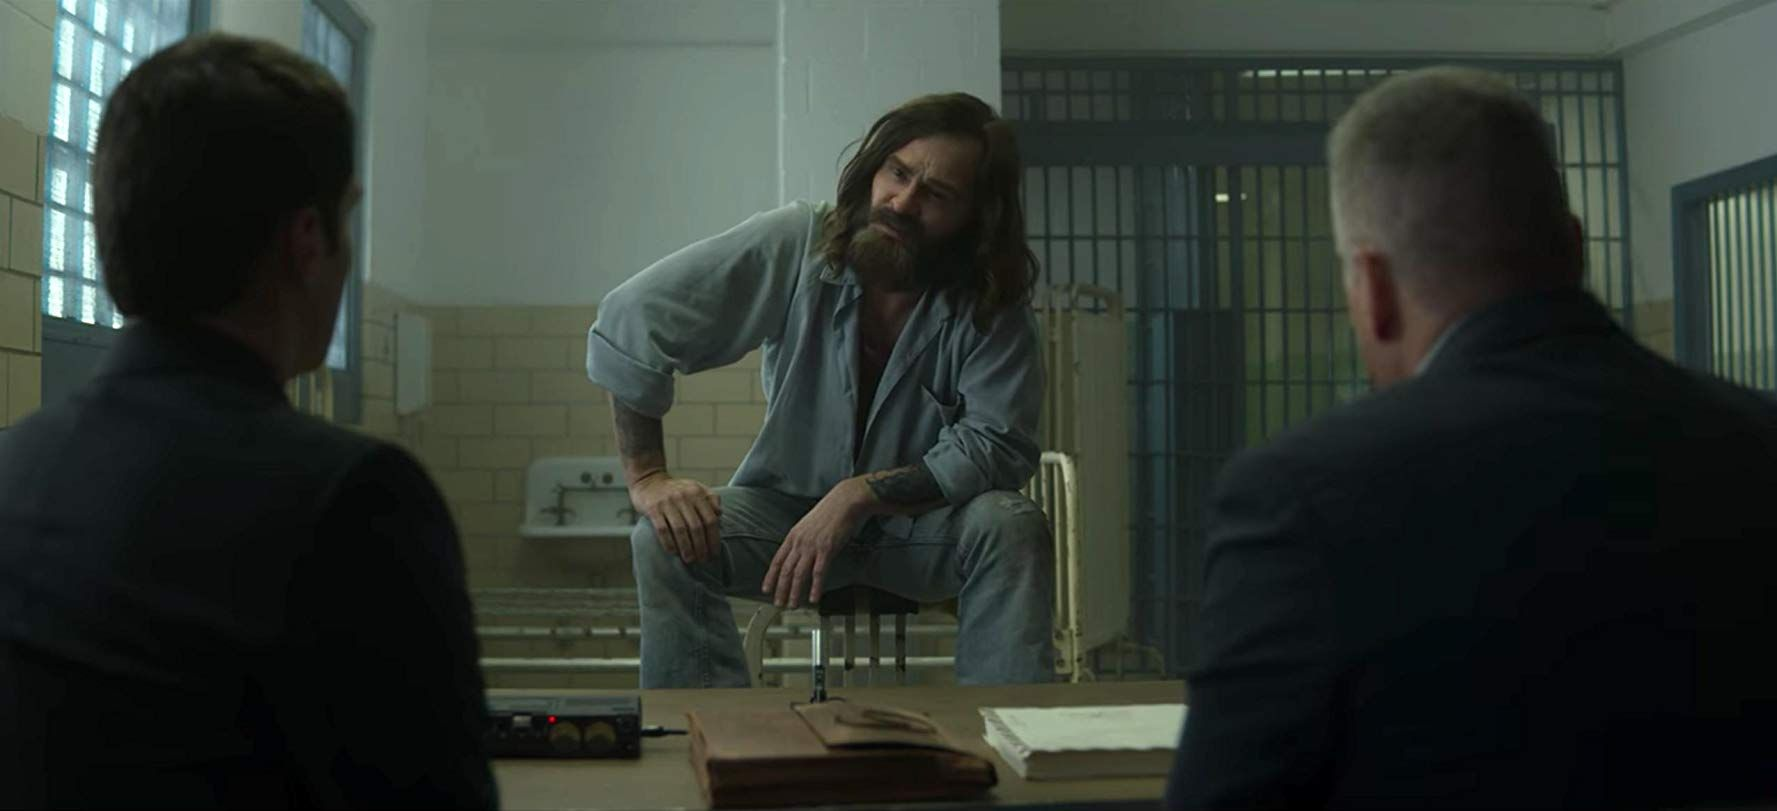 Damon Herriman Played Charles Manson in Mindhunter and Once Upon a Time in Hollywood and Is Still Doing OK, Guys